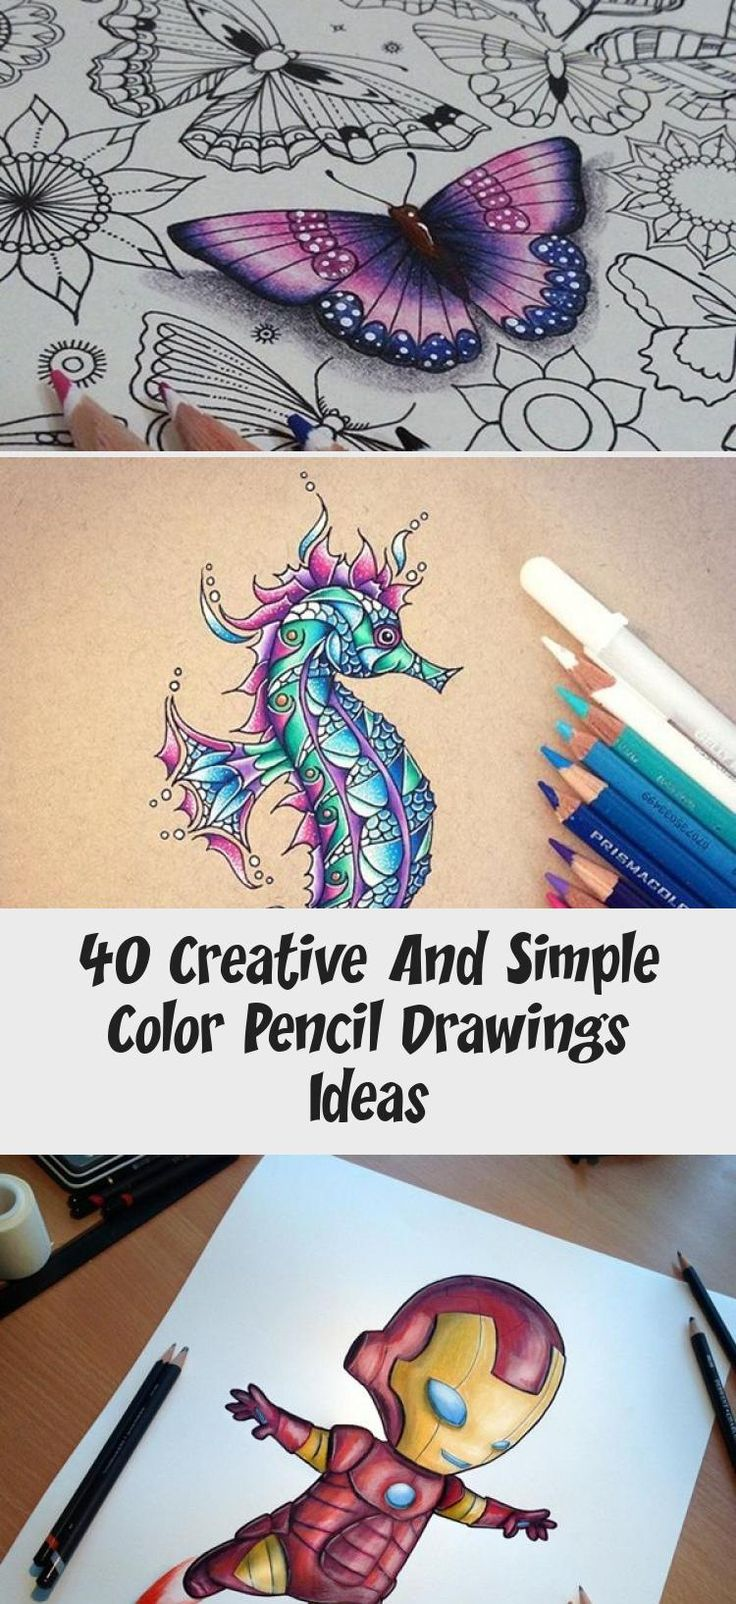 pencil drawing drawings simple creative colored pencils draw colors colourful